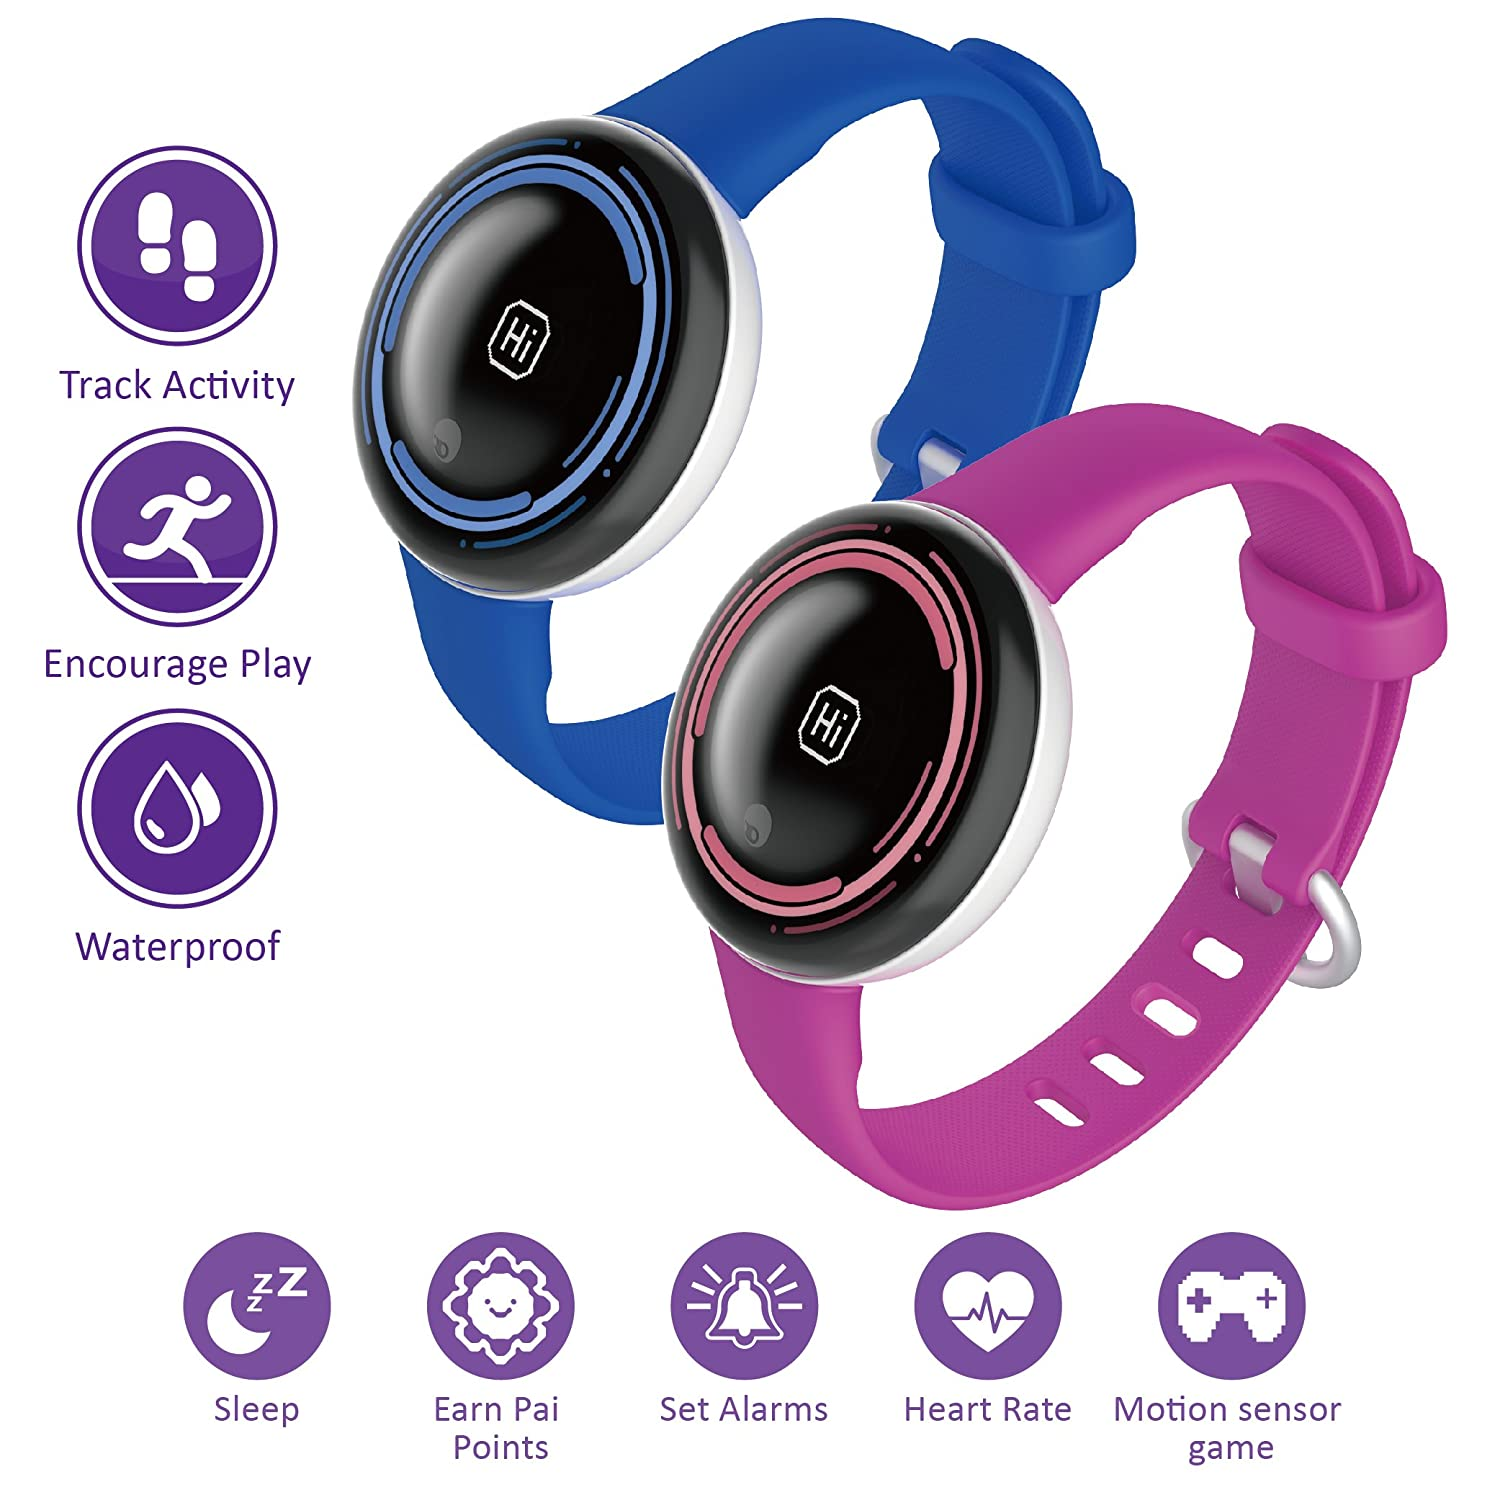 PAI TECHNOLOGY PaiBand Kids Activity Tracker IP67 Water Resistant Fitness Tracker as Step Counter Sleep Monitor Pedometer Smart Bracelet with Motion Sensor Game Pink